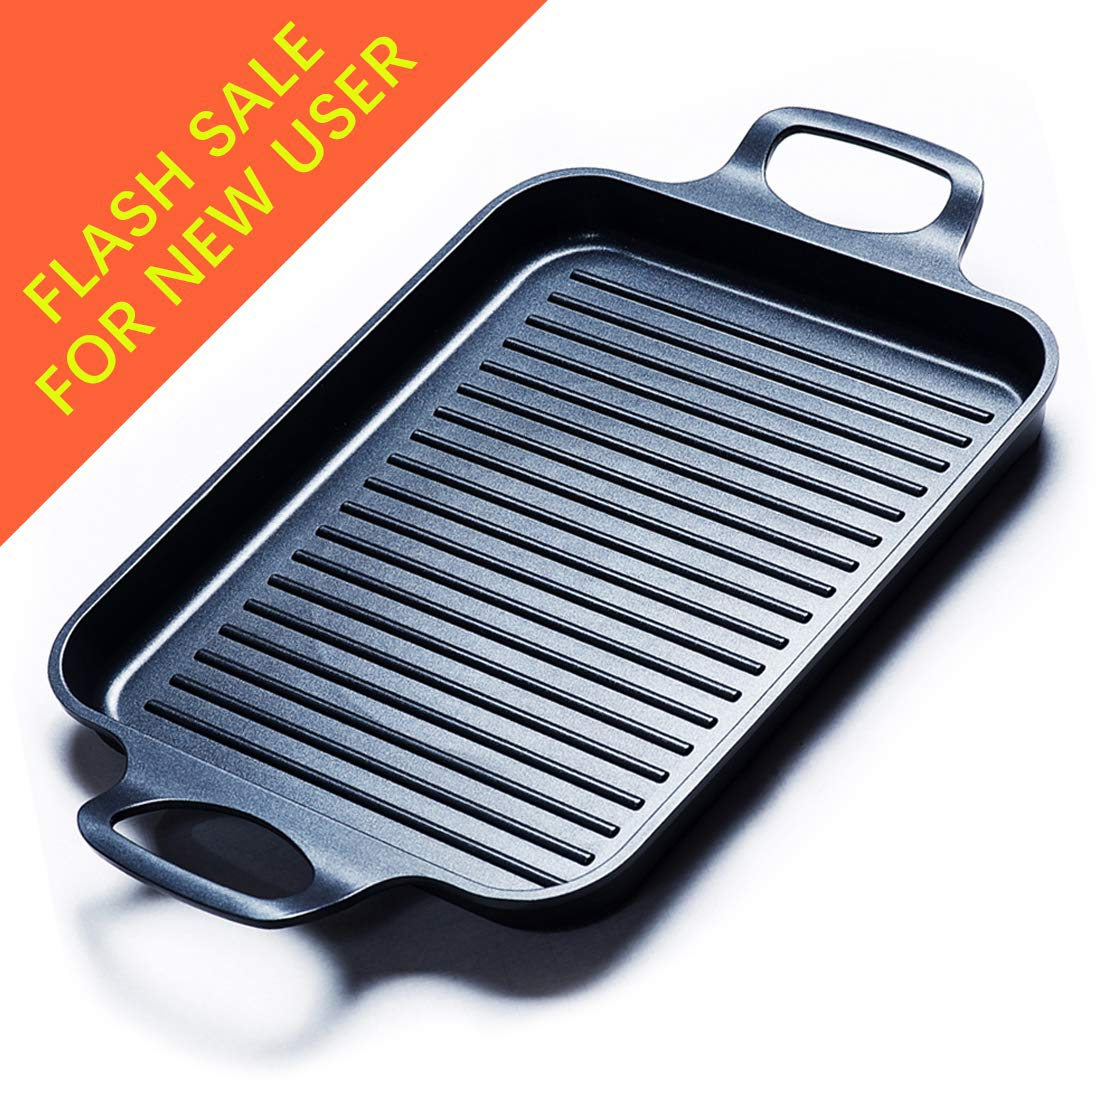 Grill Pan Stove Top Grill Induction Griddle, Grill Griddle Pan with Dual Handles by S.KITCHN by S.KITCHN